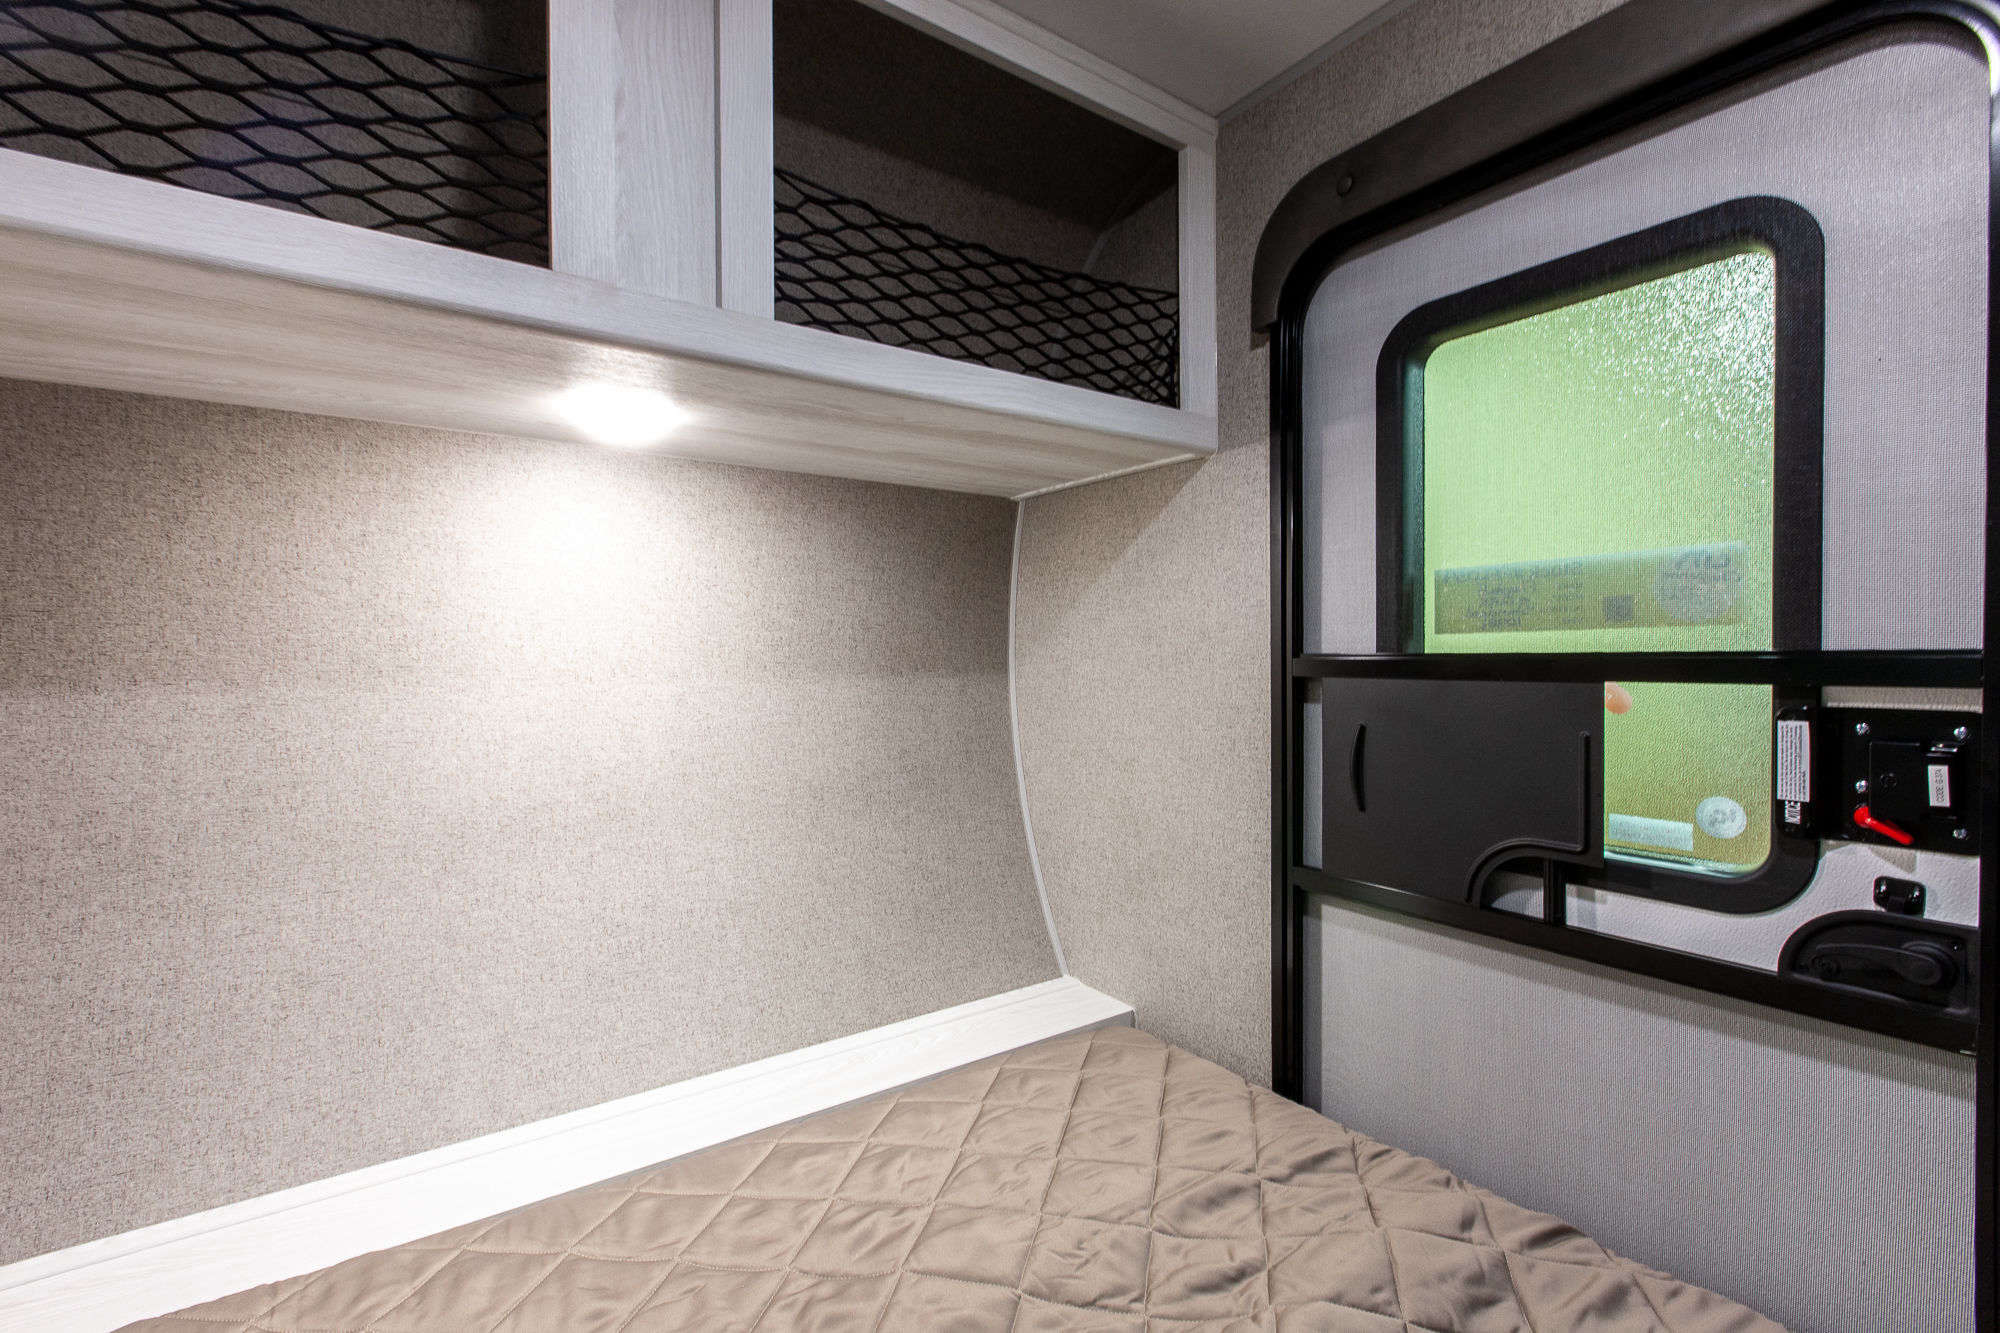 2020 Forest River Flagstaff E-Pro E12RK Travel Trailer Interior Image